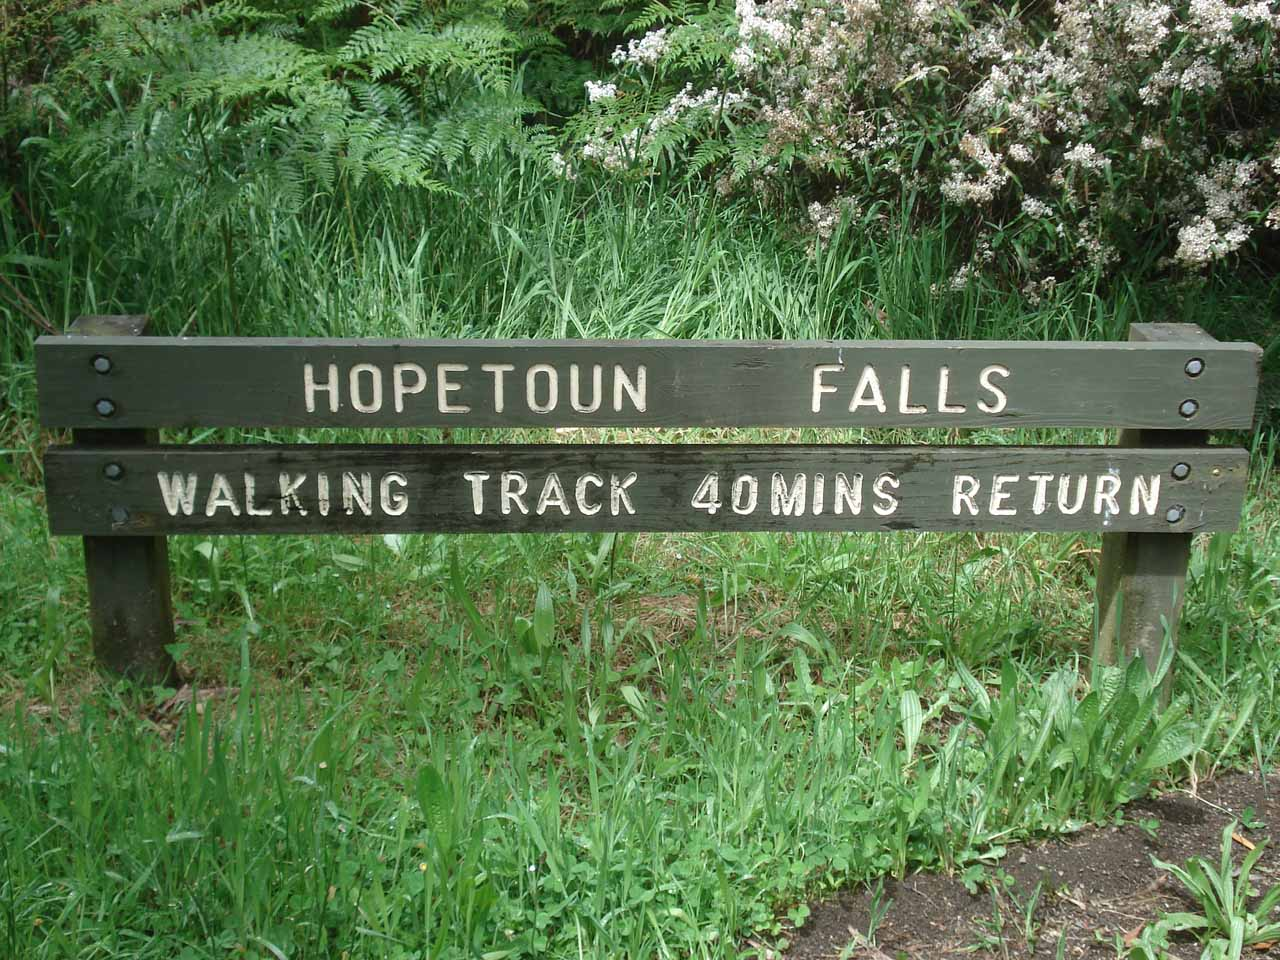 Sign telling us how much time we can expect to put in to see Hopetoun Falls